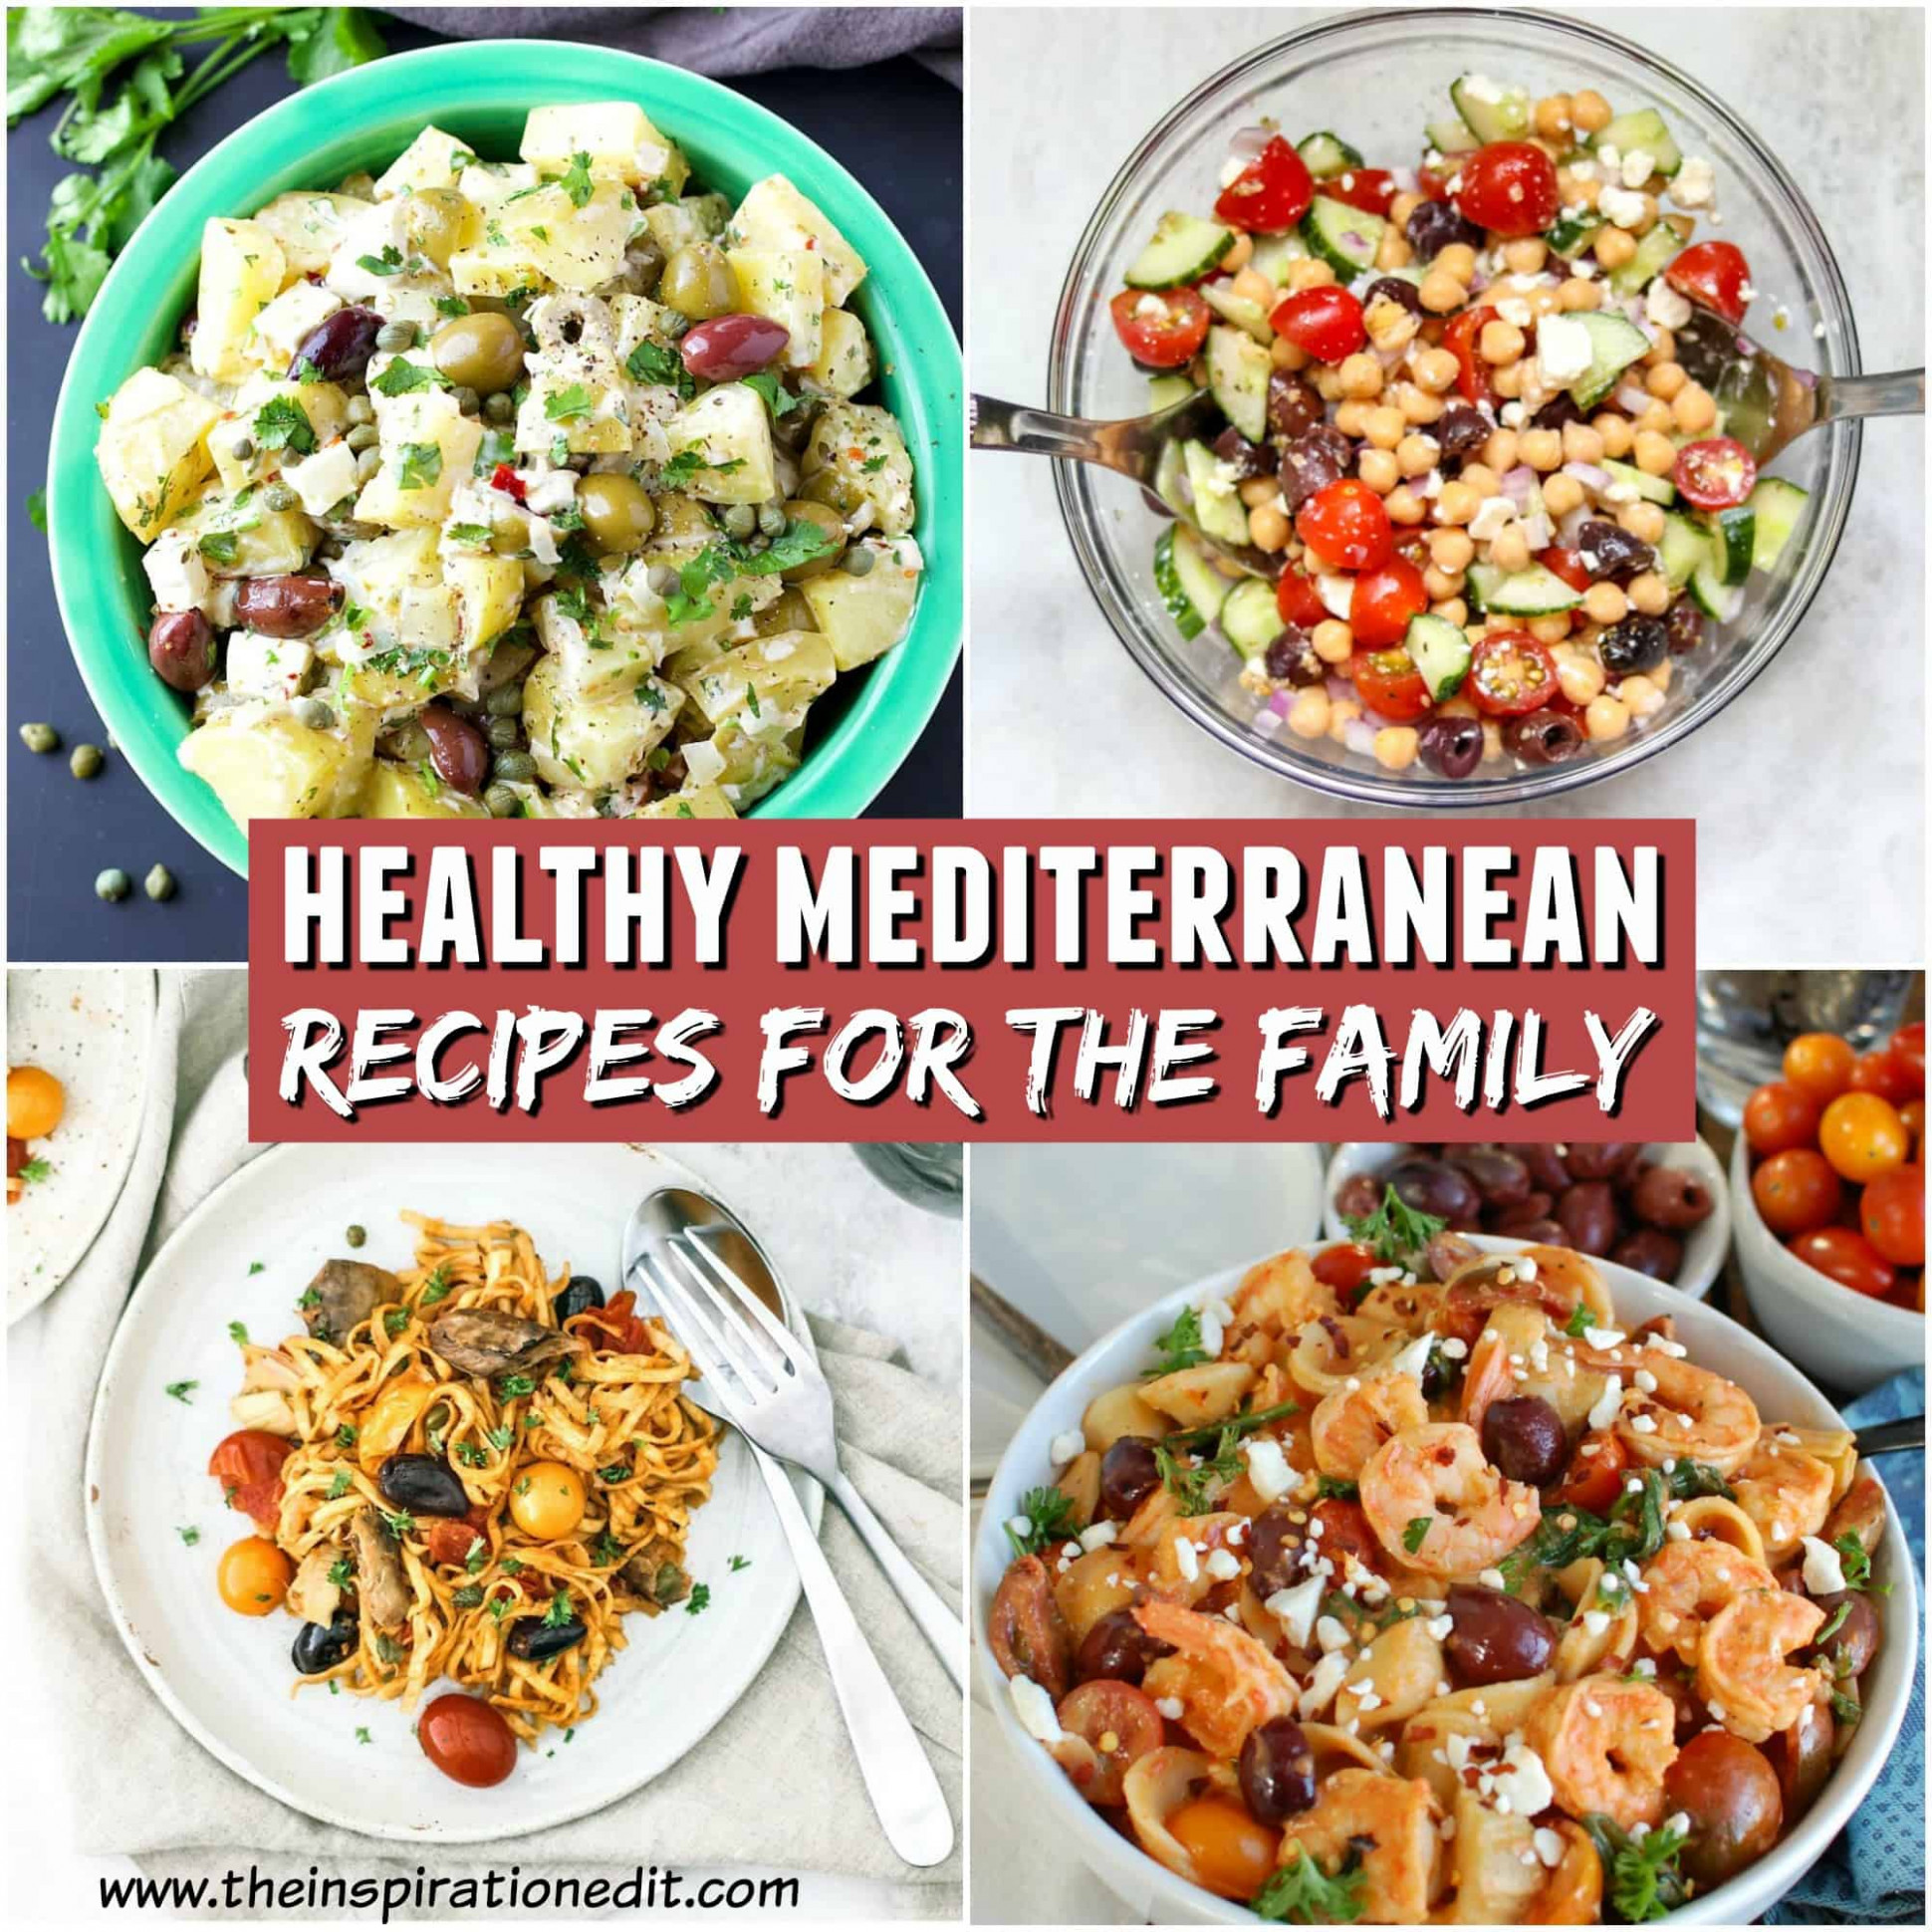 12 Healthy Mediterranean Recipes For Your Family · The ..